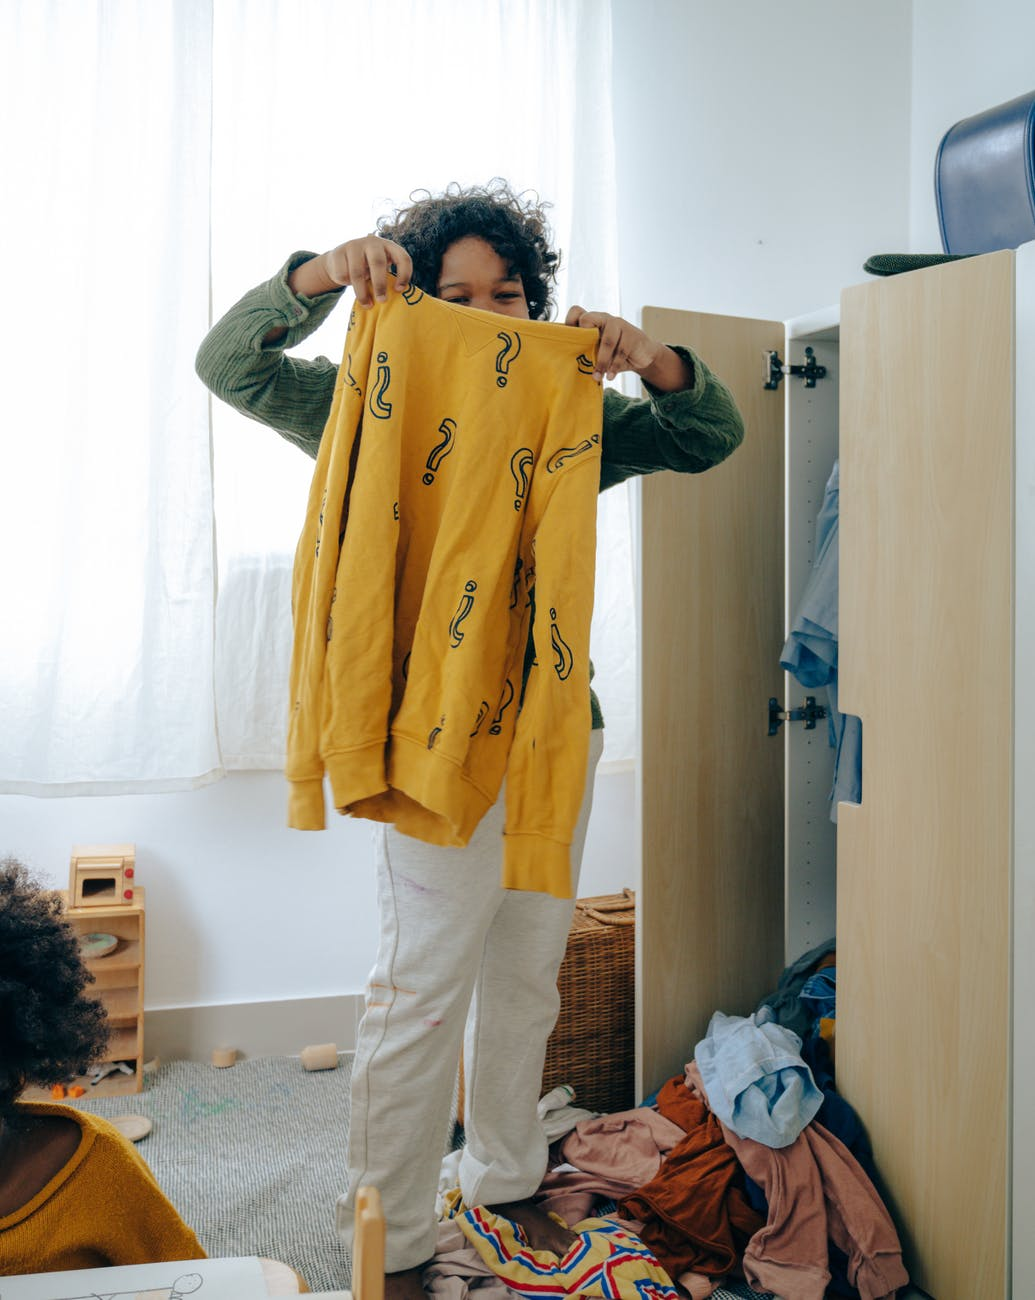 black teenager choosing clothes in bedroom